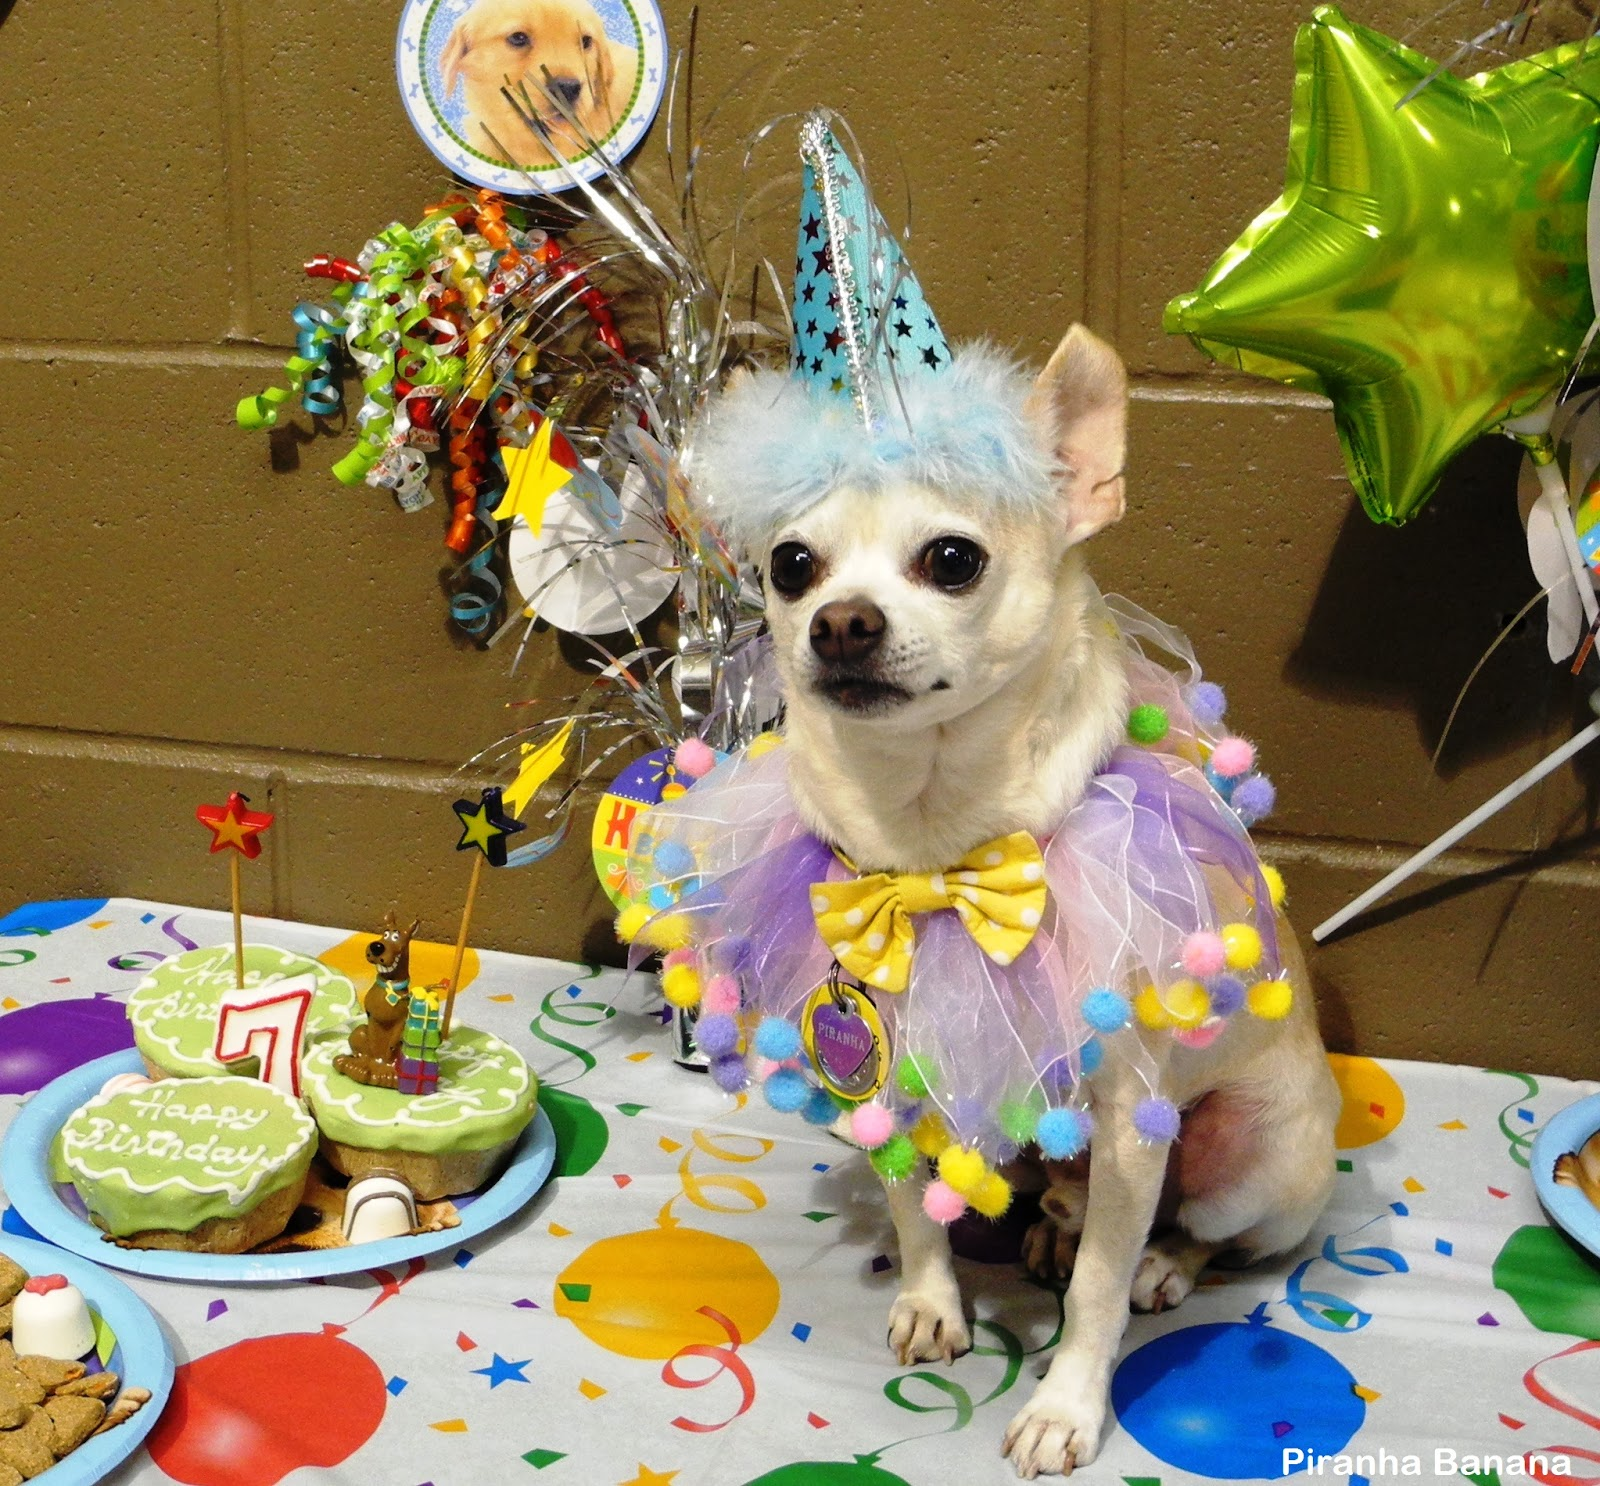 chihuahua birthday A Day in the Life of Piranha Banana: WW: Chihuahua Birthday Party! chihuahua birthday